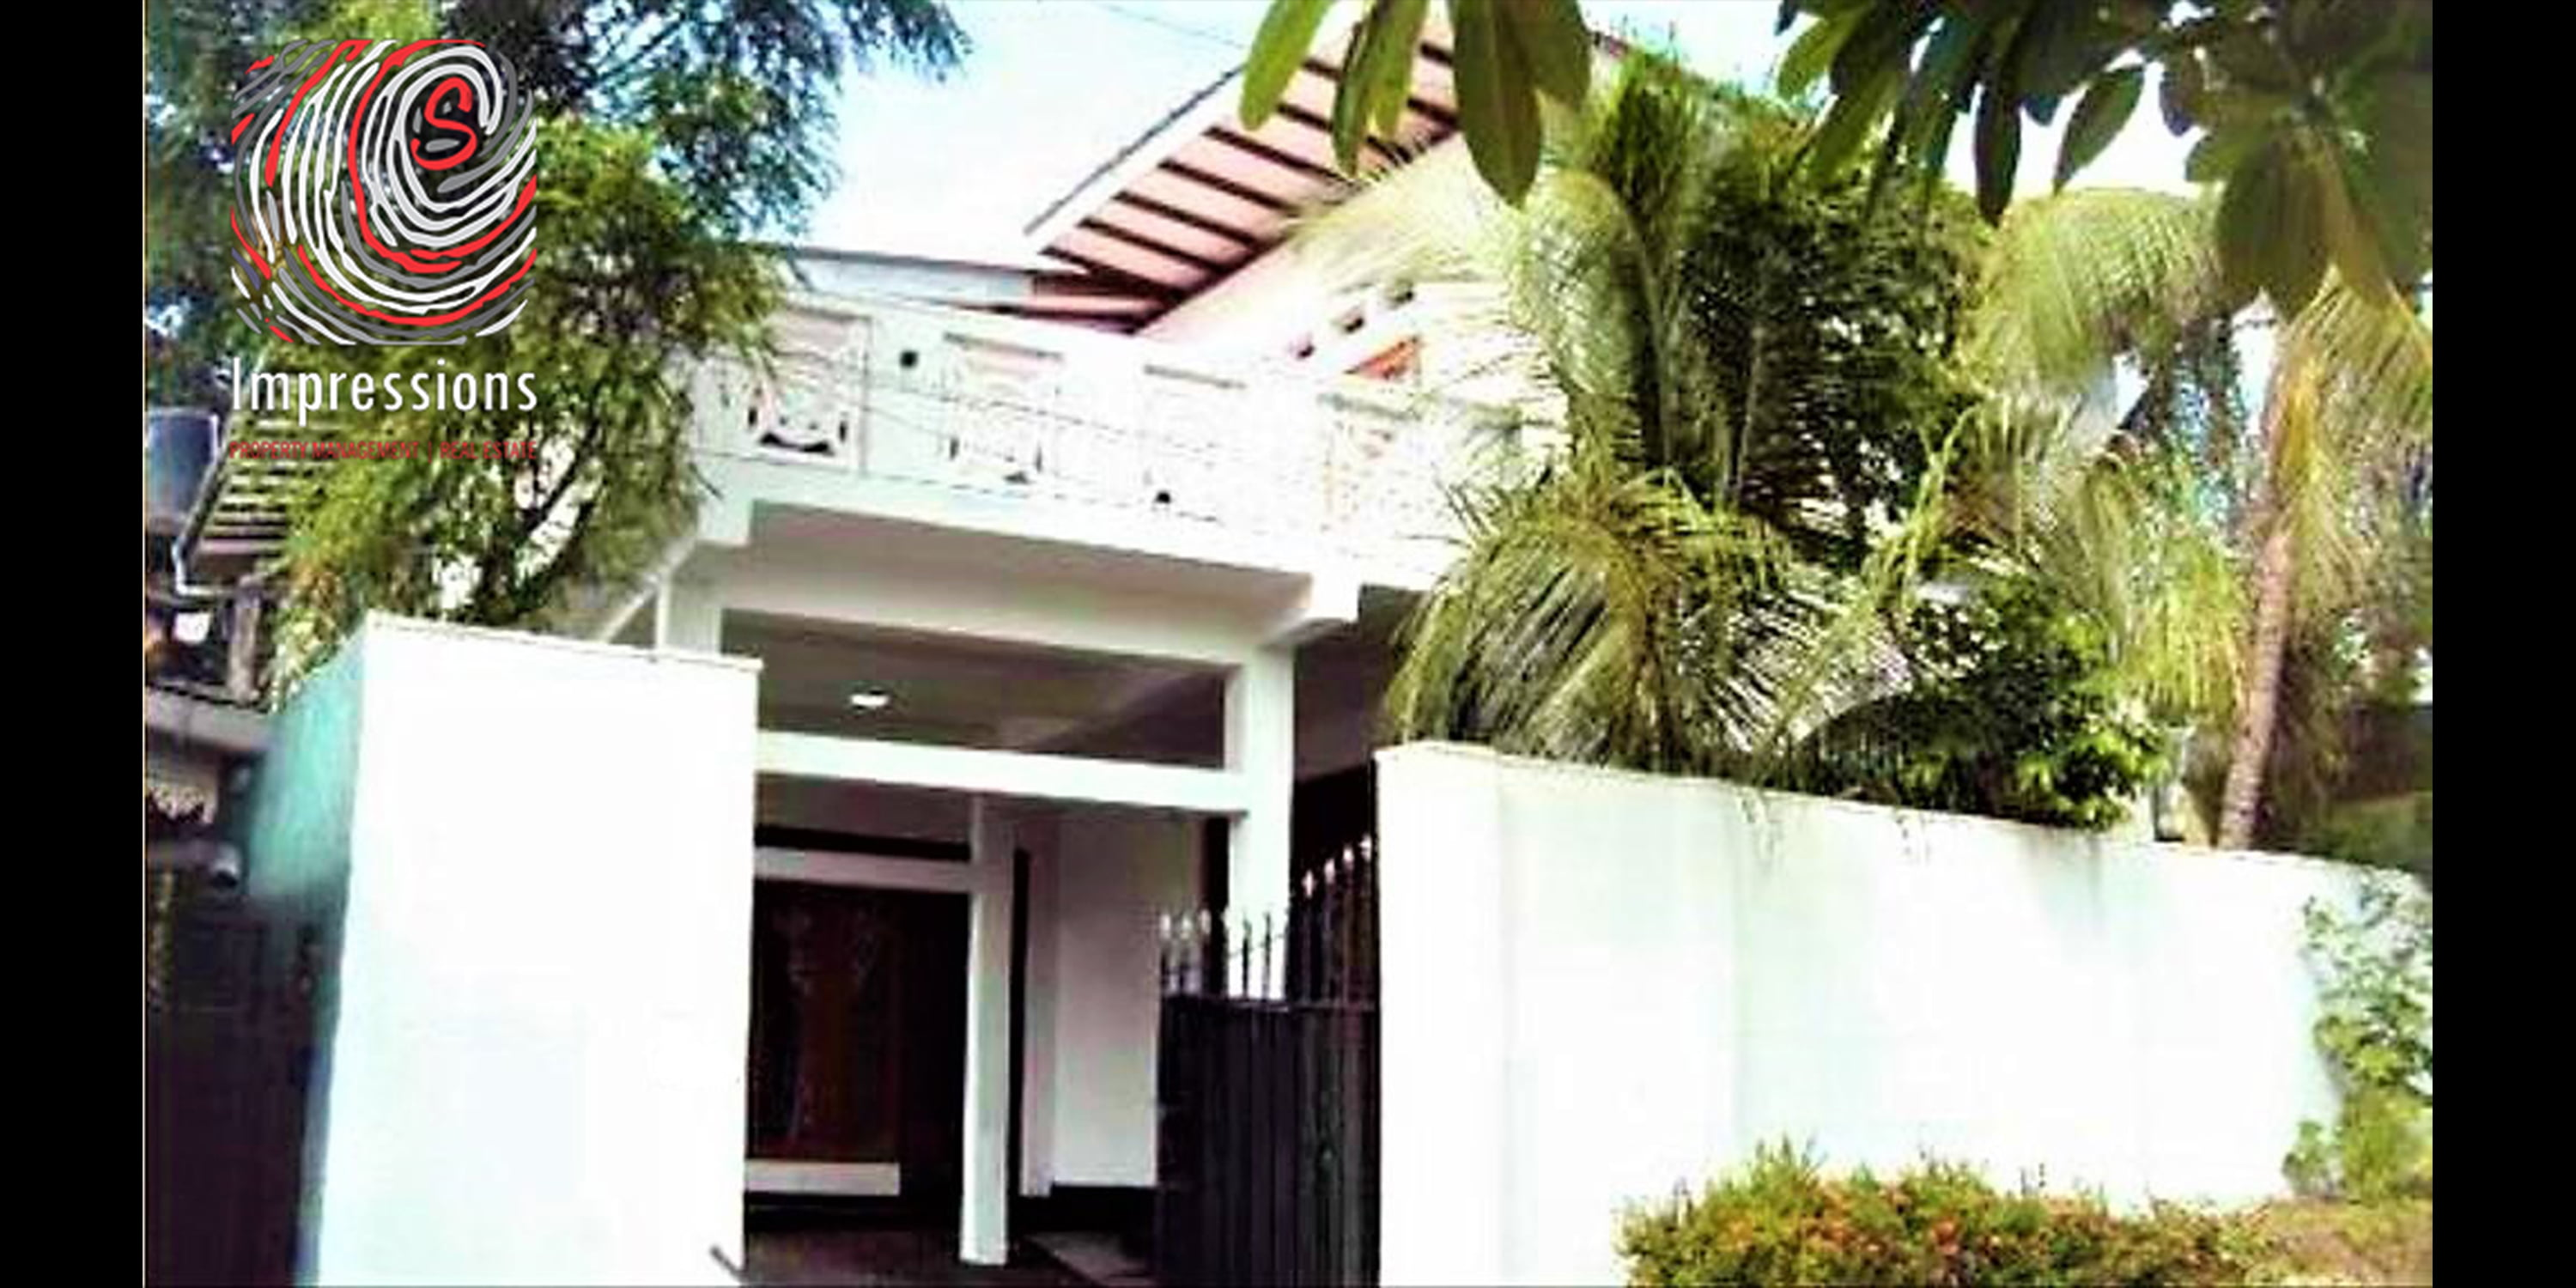 Dehiwala, 2-storey, 4-bedroom house with annexe for sale